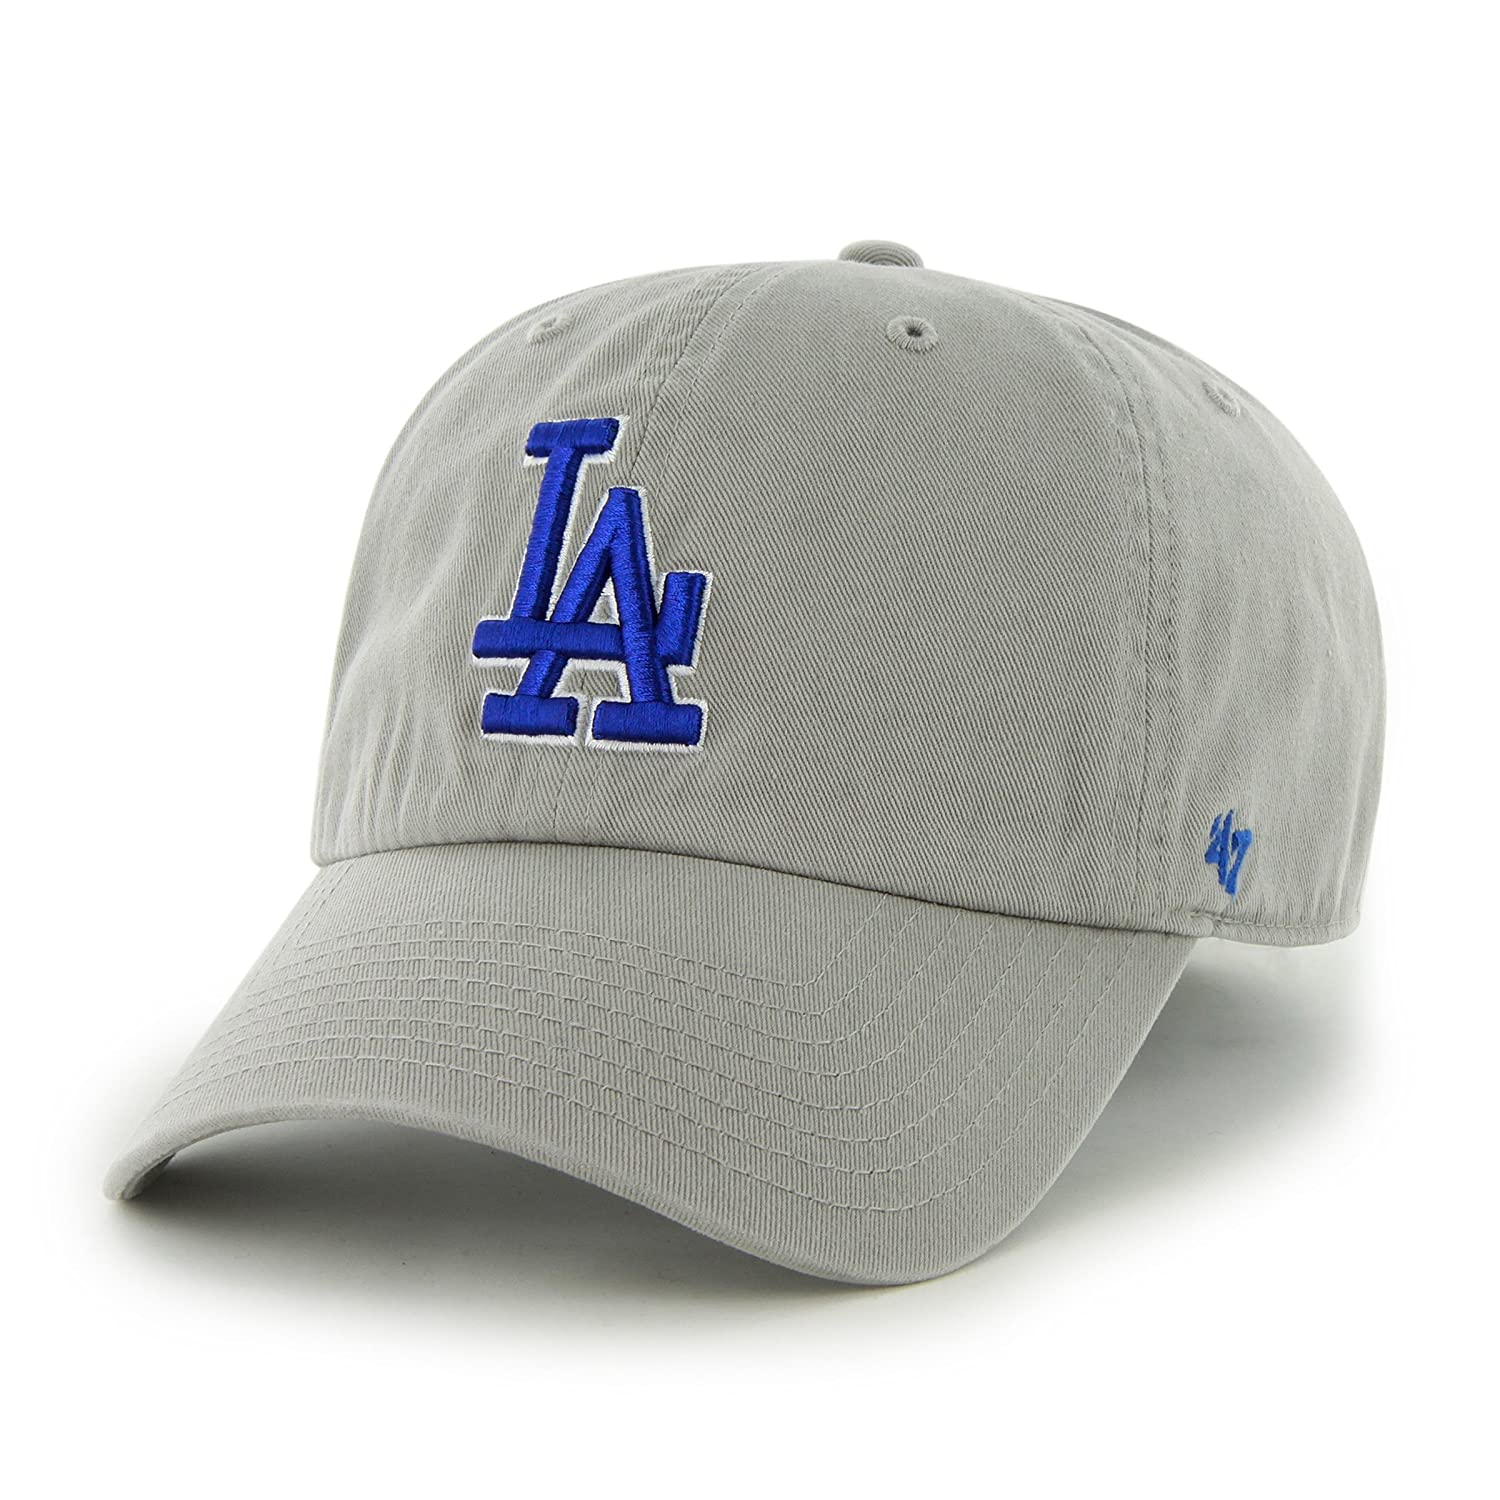 8c4cba804 Amazon.com : MLB Los Angeles Dodgers '47 Brand Clean Up Adjustable Cap, One  Size, Gray : Sports & Outdoors